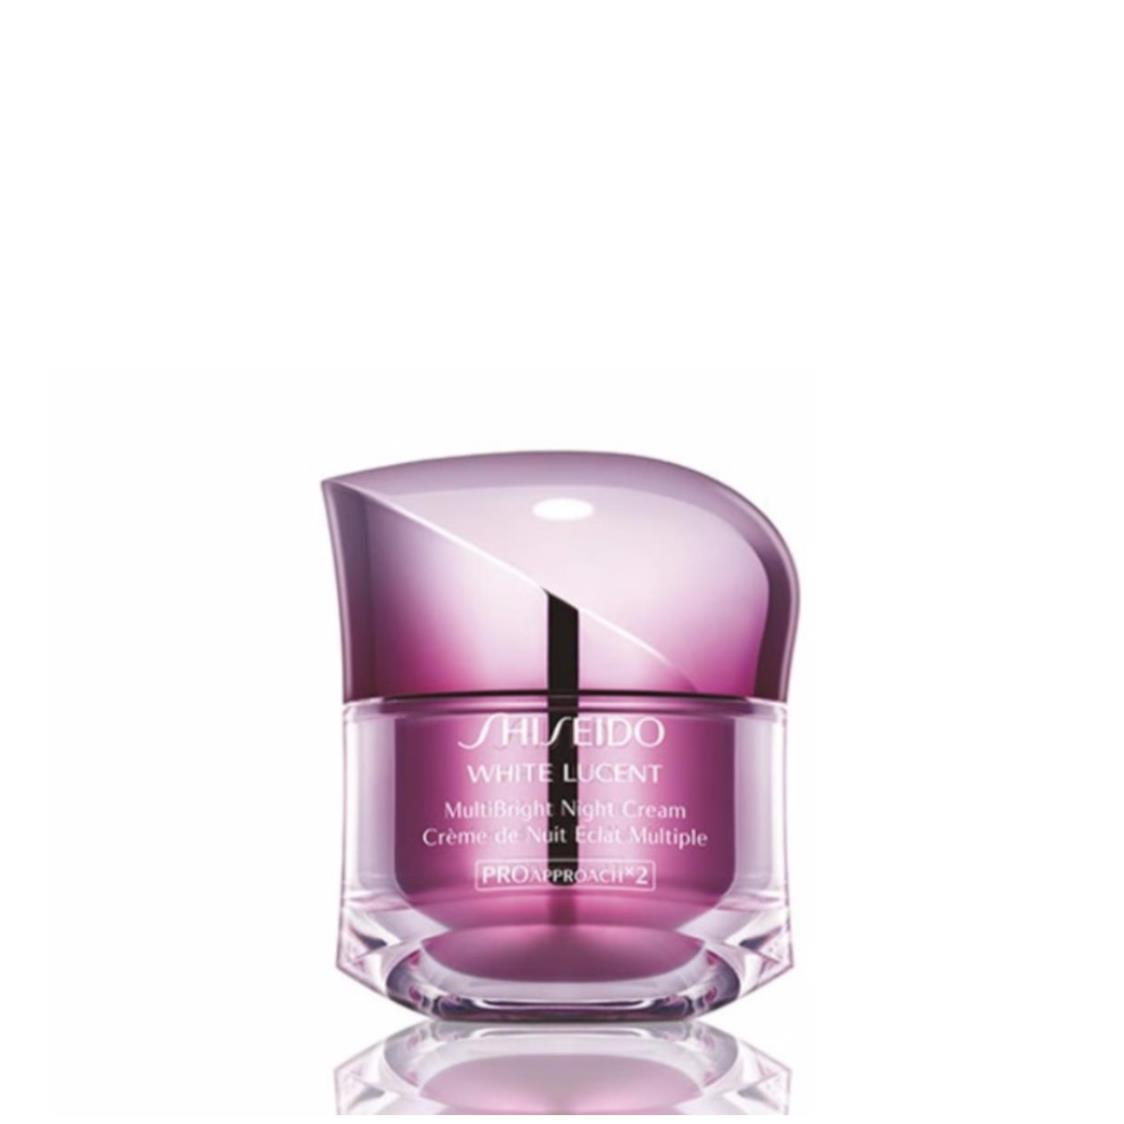 White Lucent MultiBright Night Cream 50ml